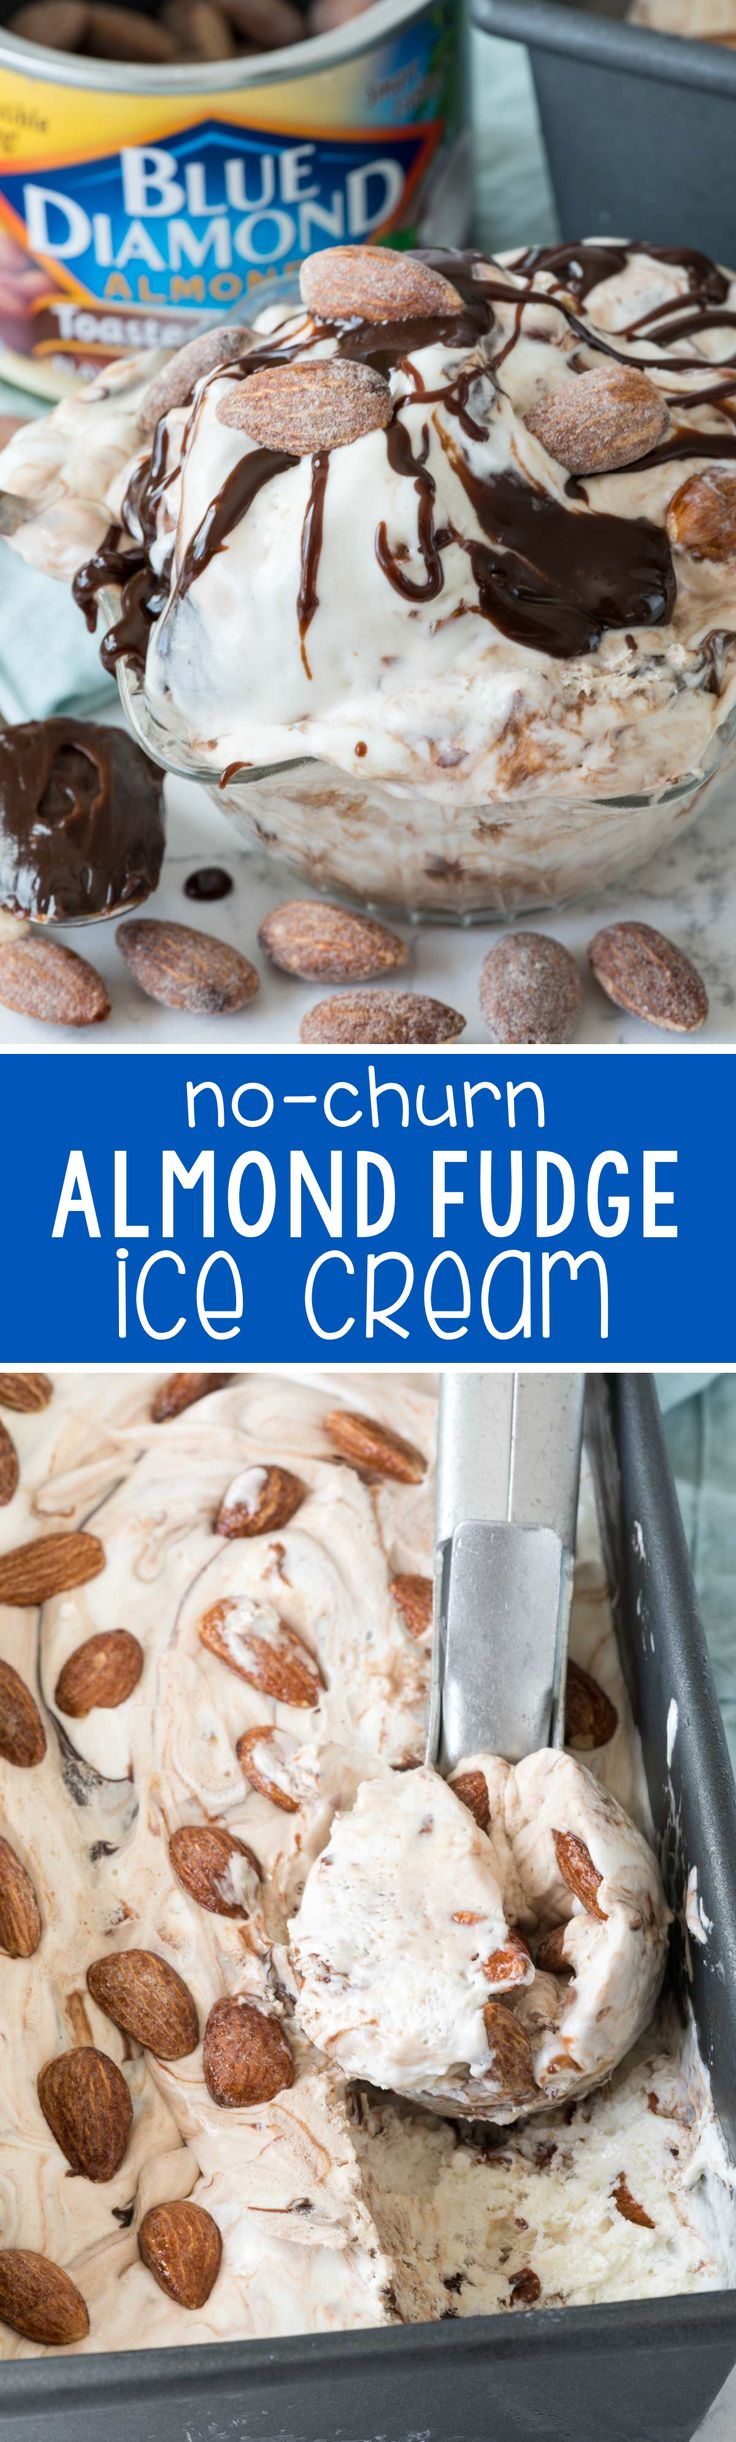 No Churn Almond Fudge Ice Cream - this easy ice cream recipe doesn't need a machine! It's full of almonds and lots of hot fudge - we ate this in just one day!